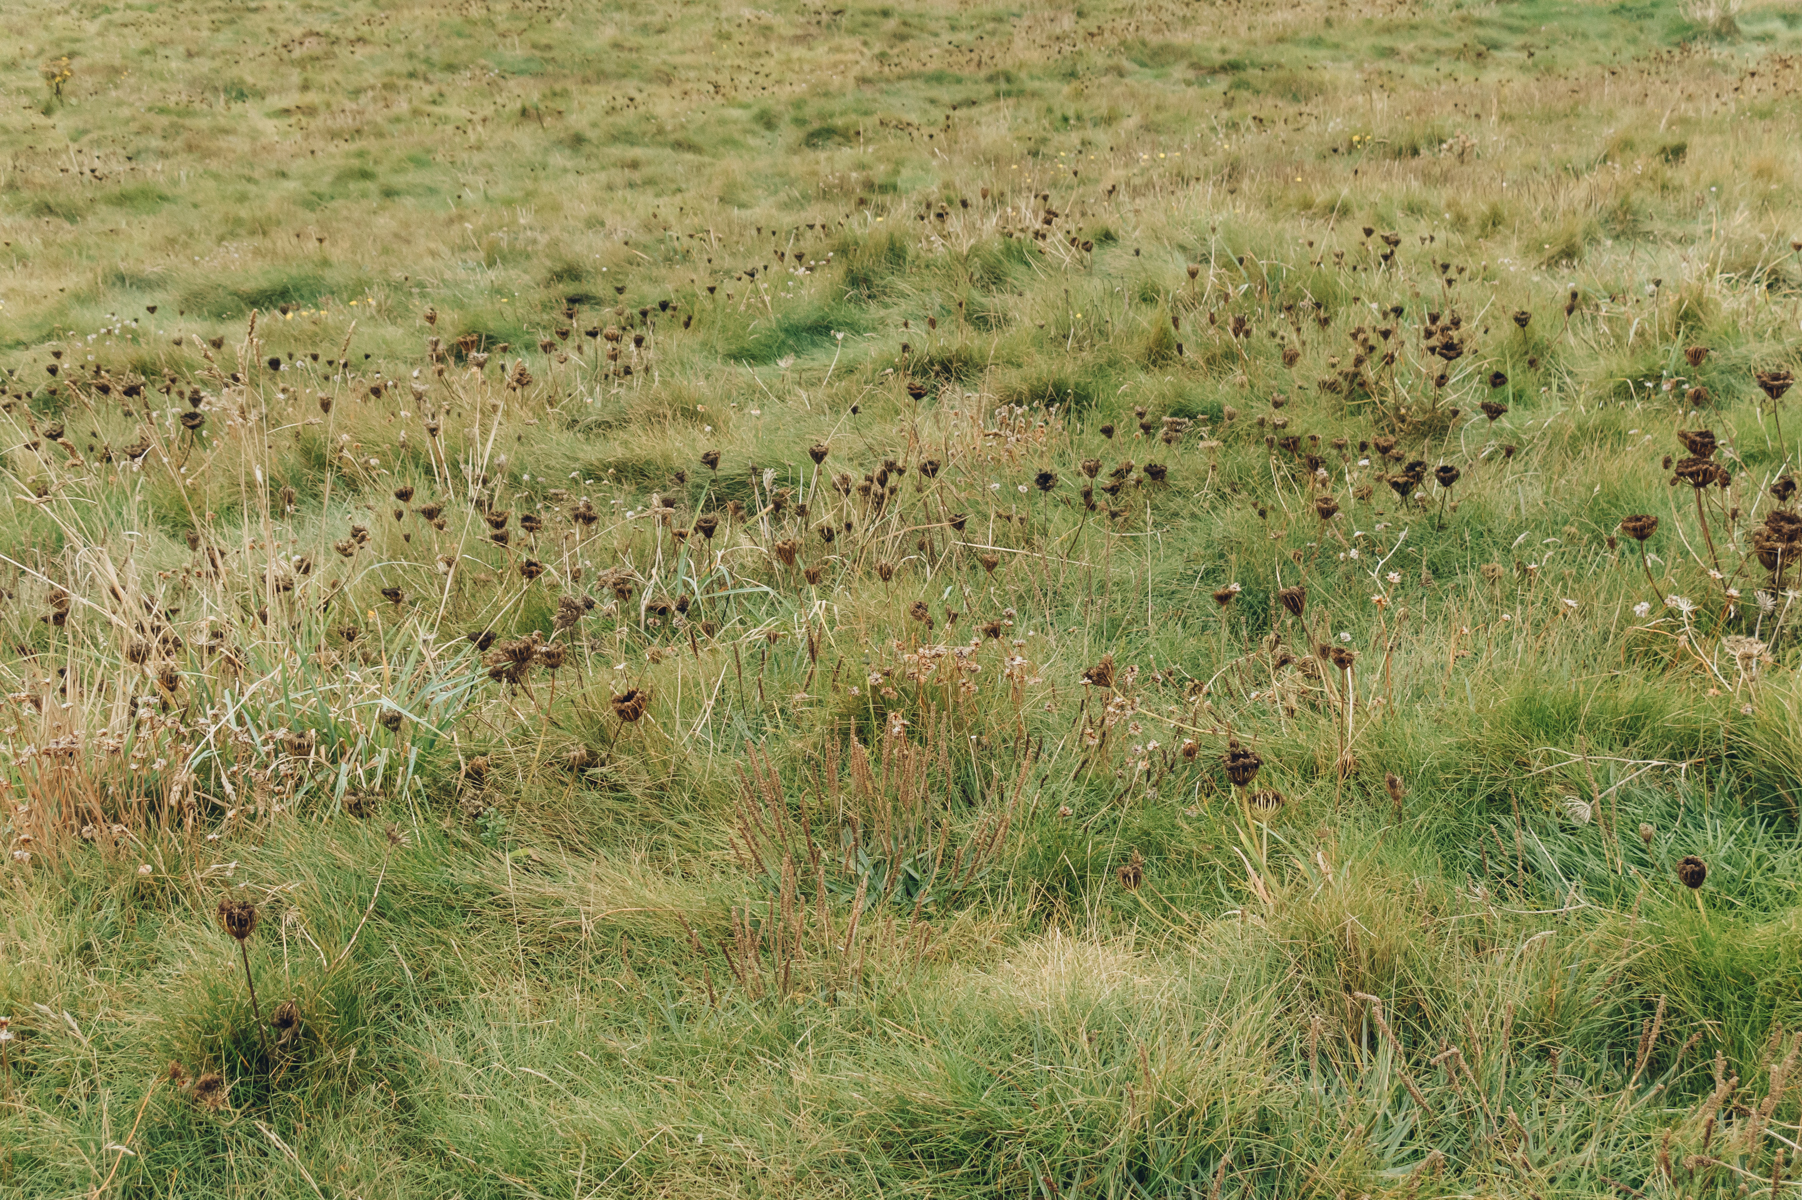 Grasses and seed heads.